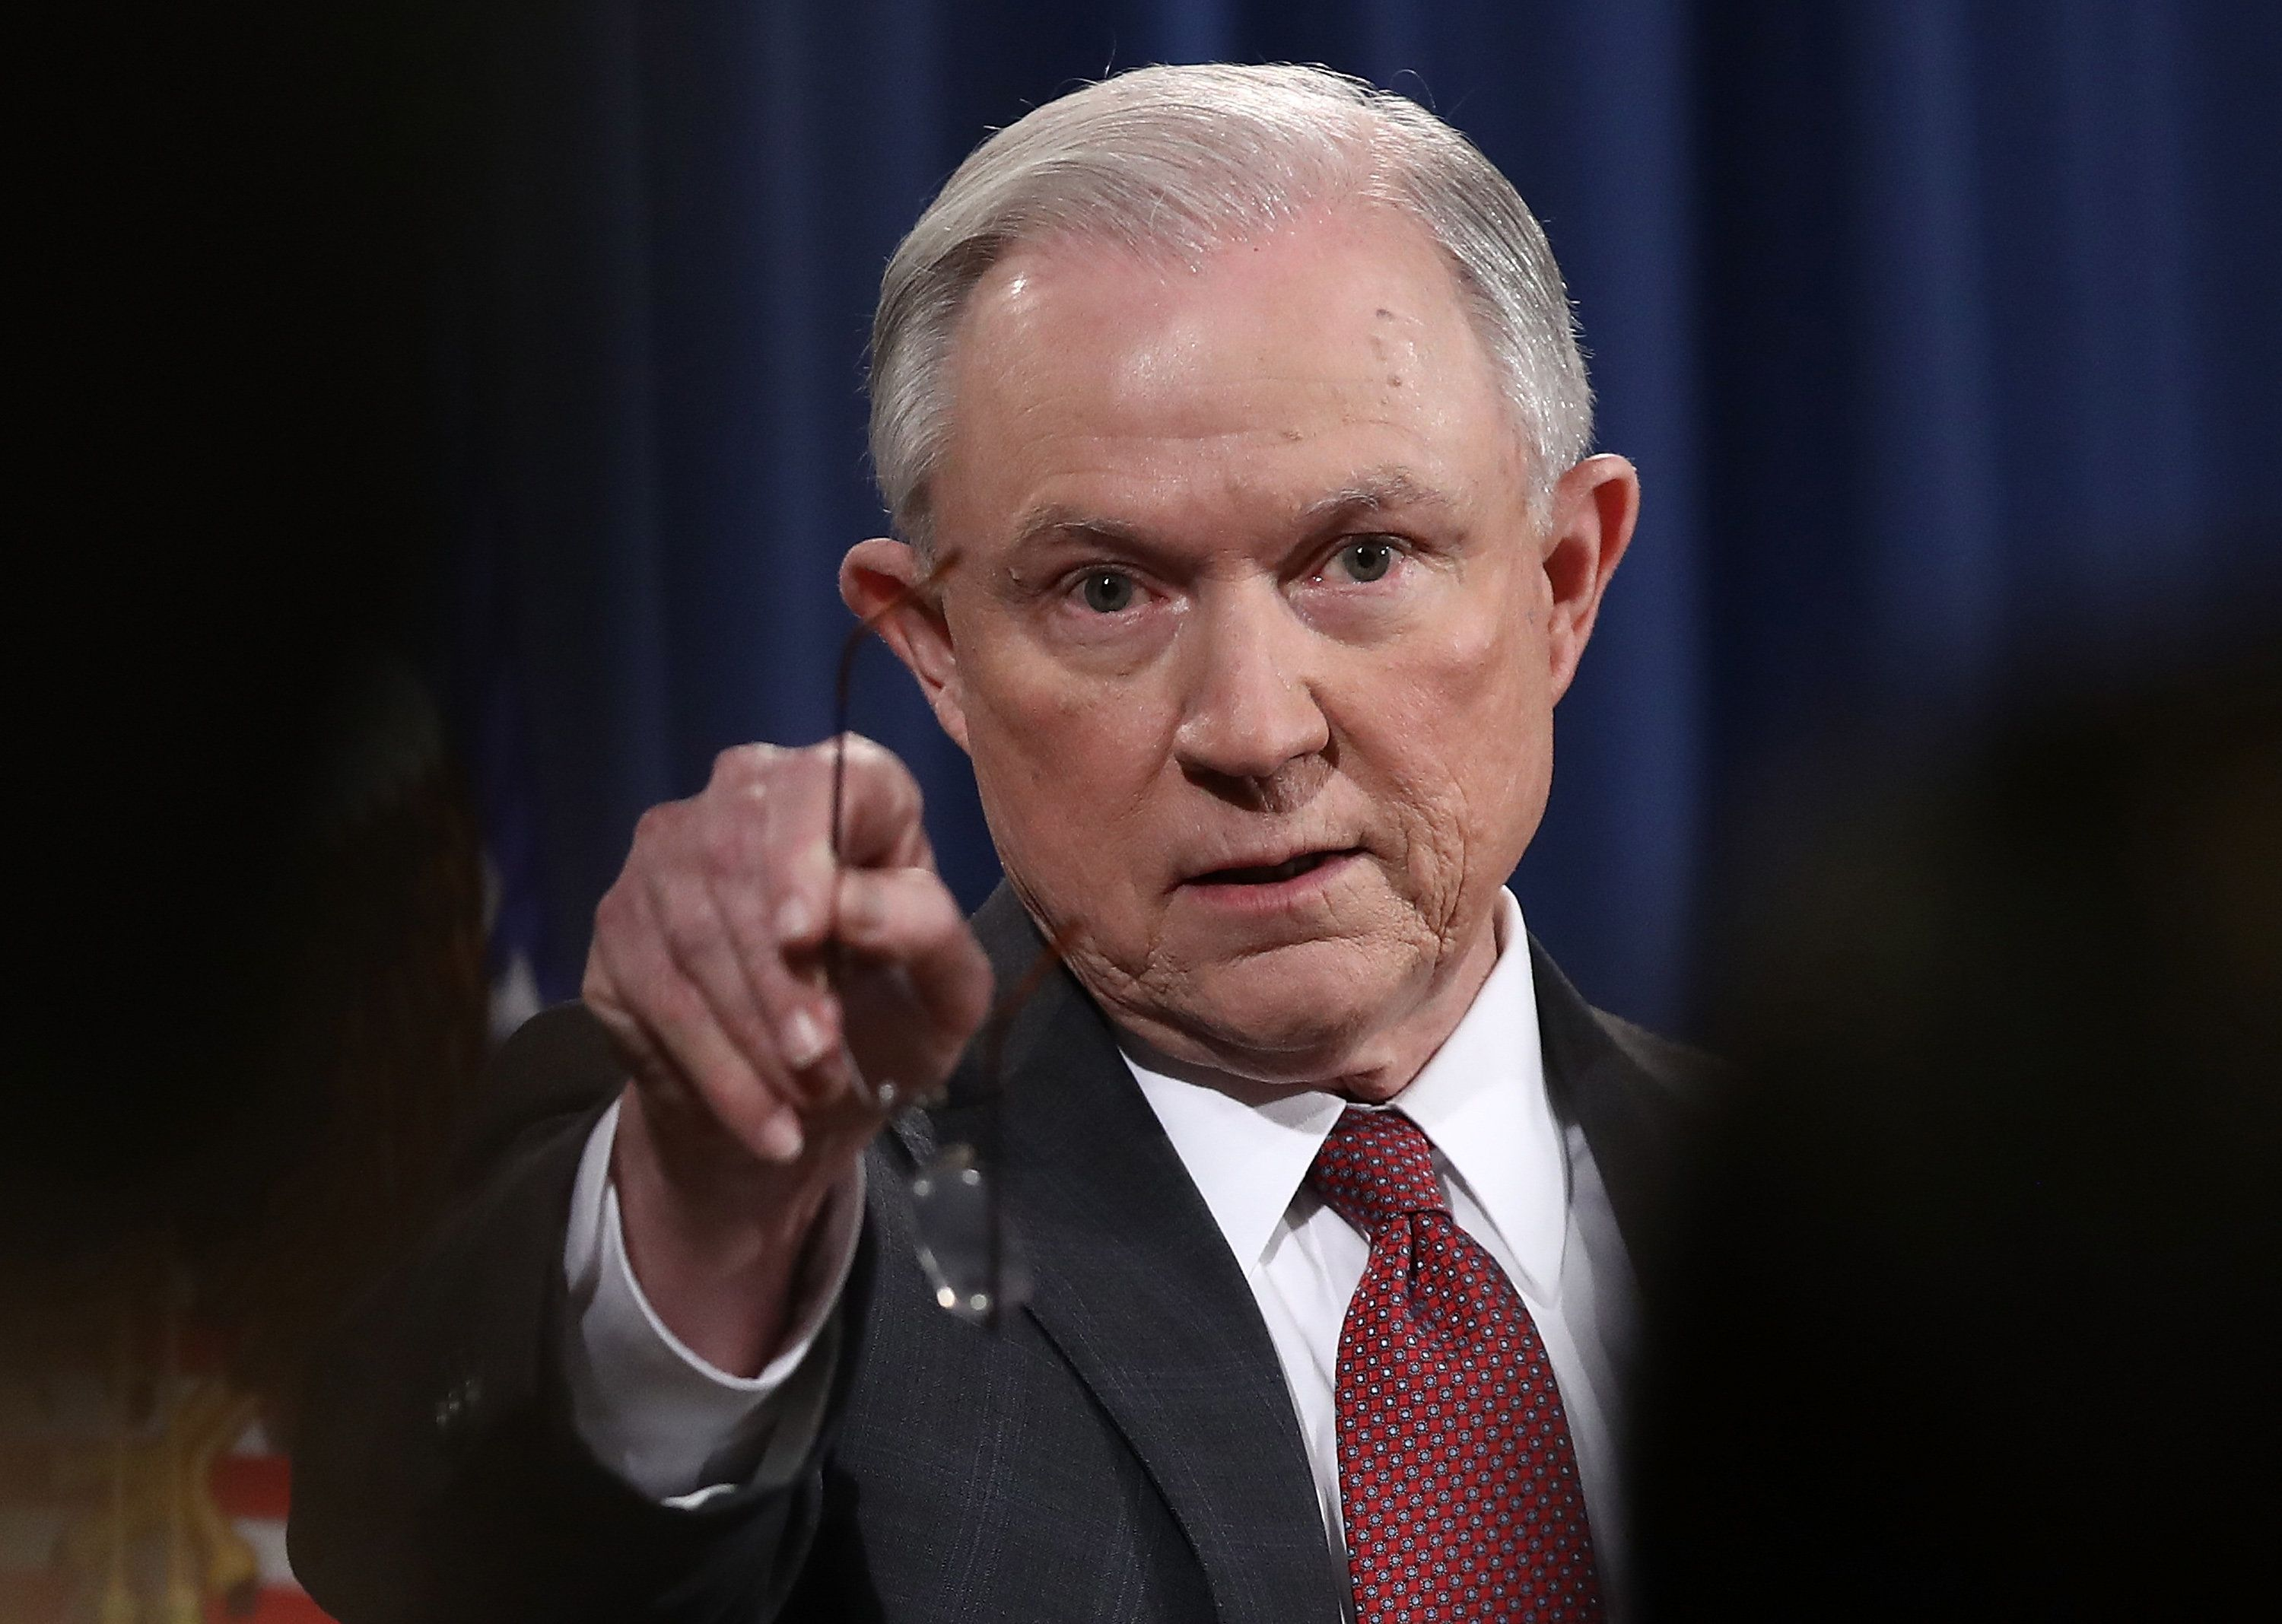 WASHINGTON, DC - MARCH 02:  U.S. Attorney General Jeff Sessions takes questions during a press conference at the Department of Justice on March 2, 2017 in Washington, DC. Sessions addressed the calls for him to recuse himself from Russia investigations after reports surfaced of meetings he had with the Russian ambassador during the U.S. presidential campaign.  (Photo by Win McNamee/Getty Images)